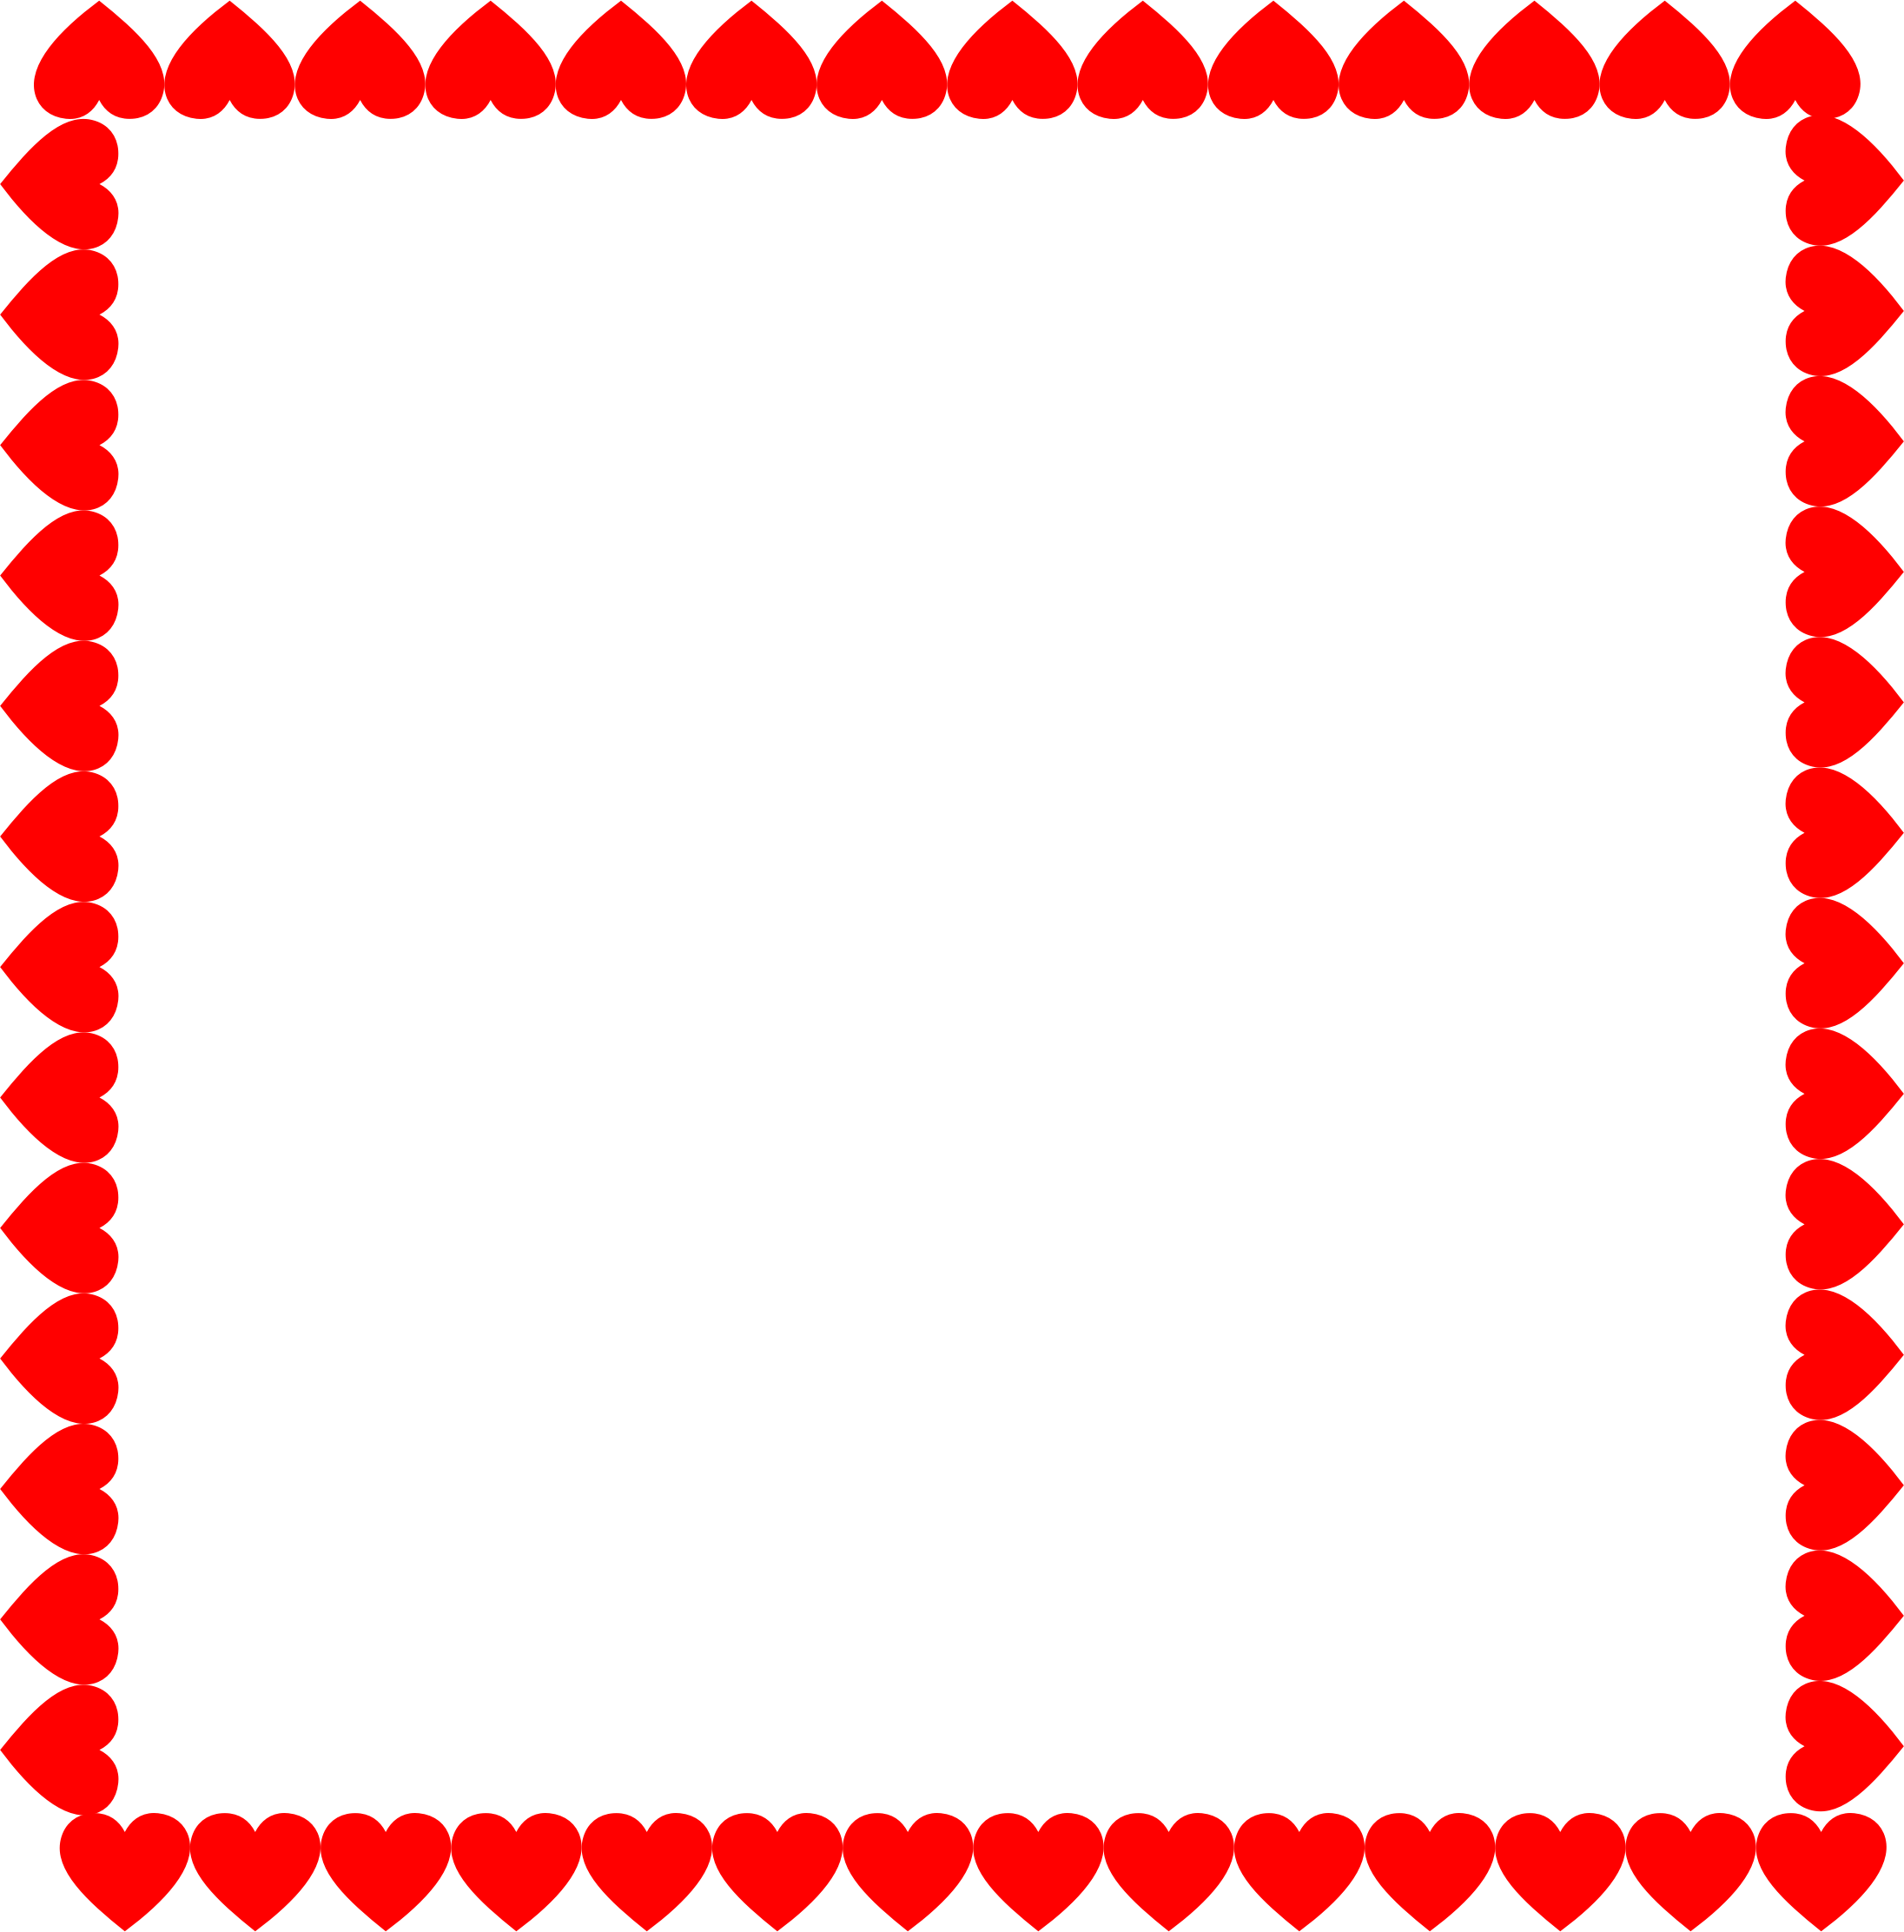 Clipart hearts frame. Big image png